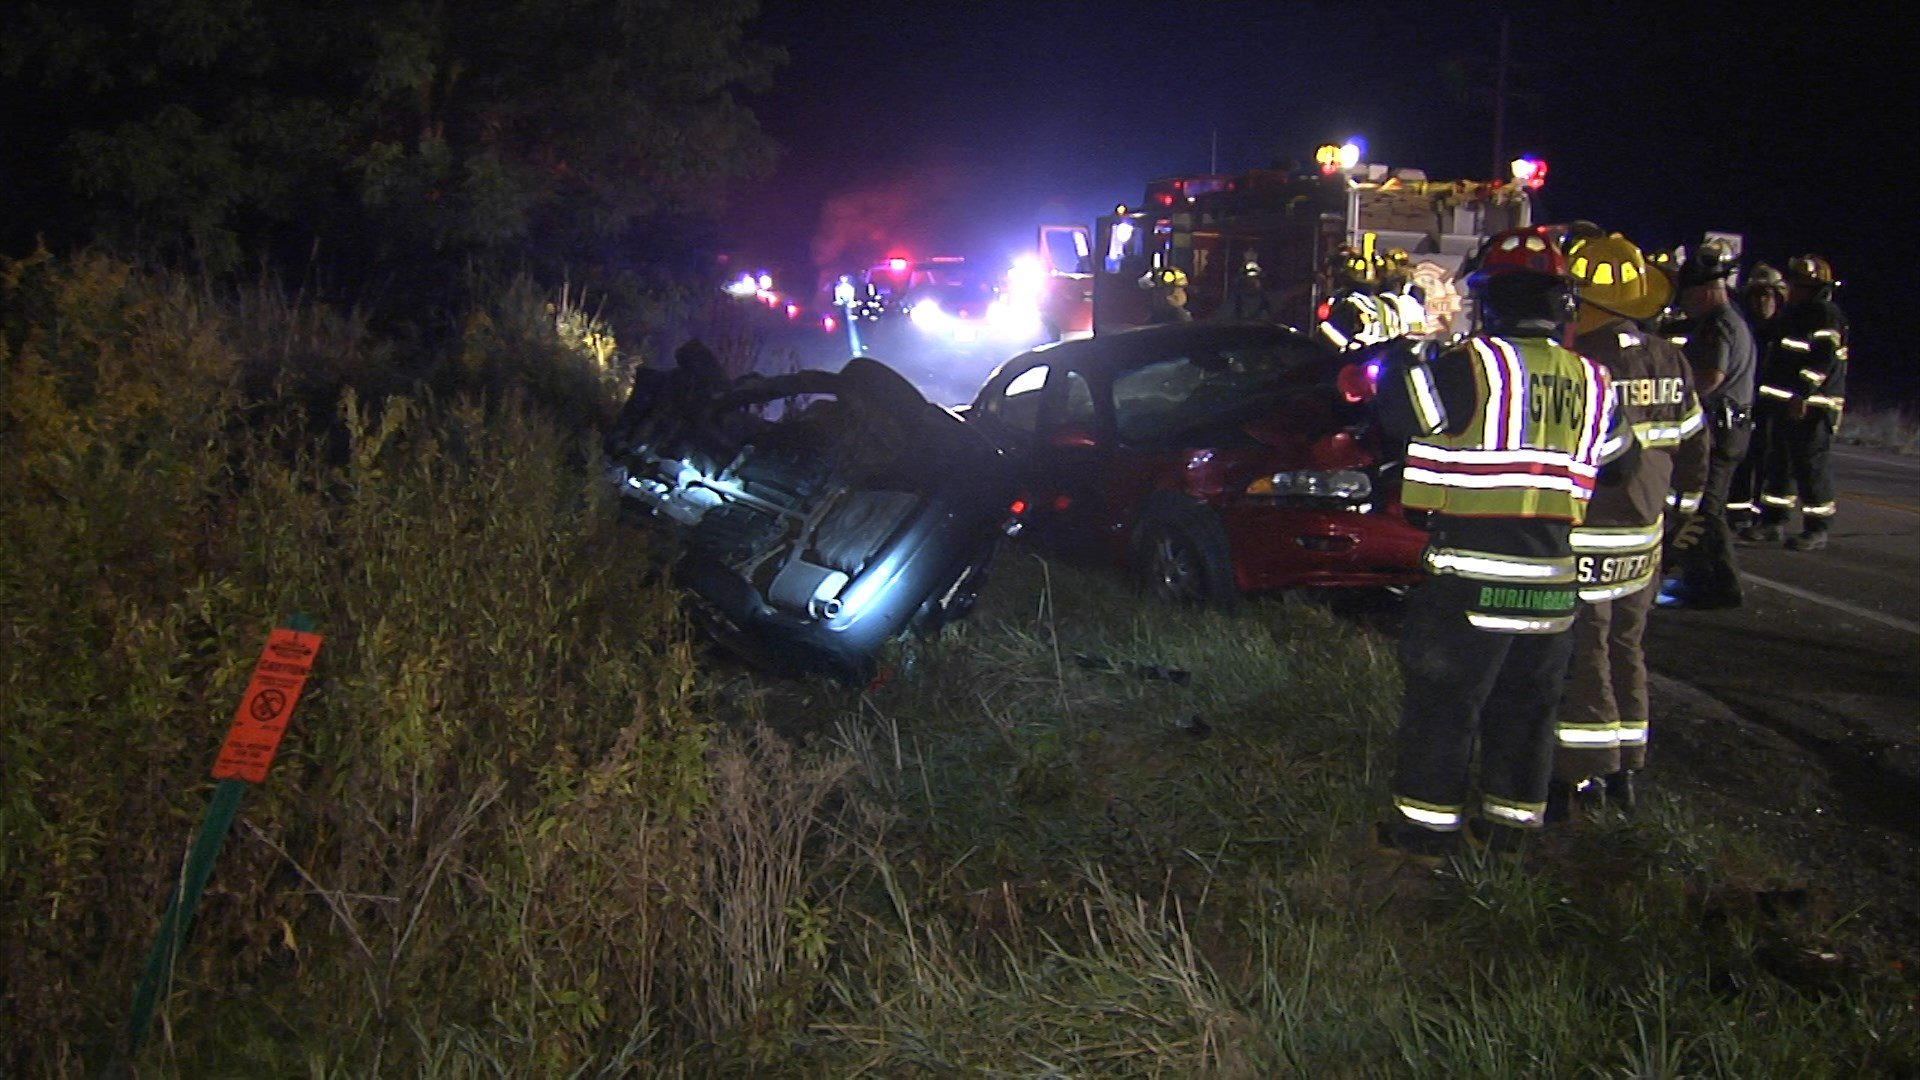 Two injured in accident at Route 8 and Phillipsville Road